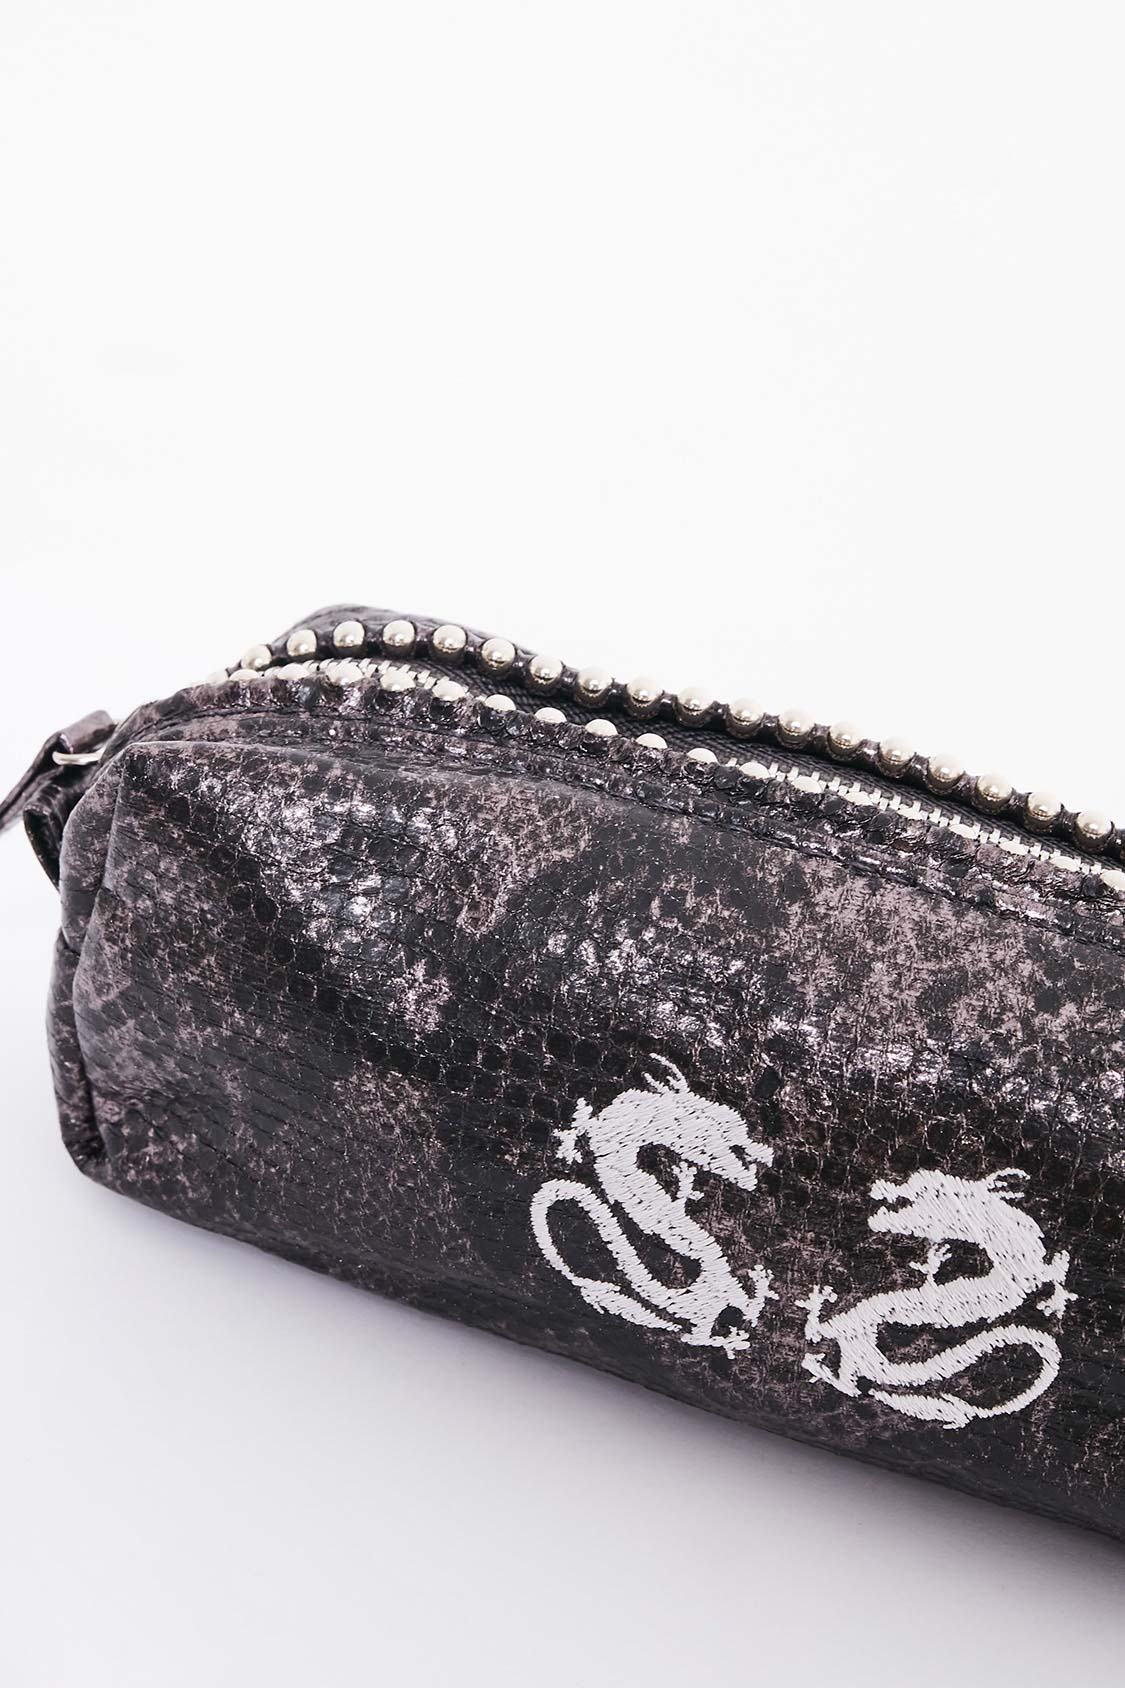 Dragons printed pencil case